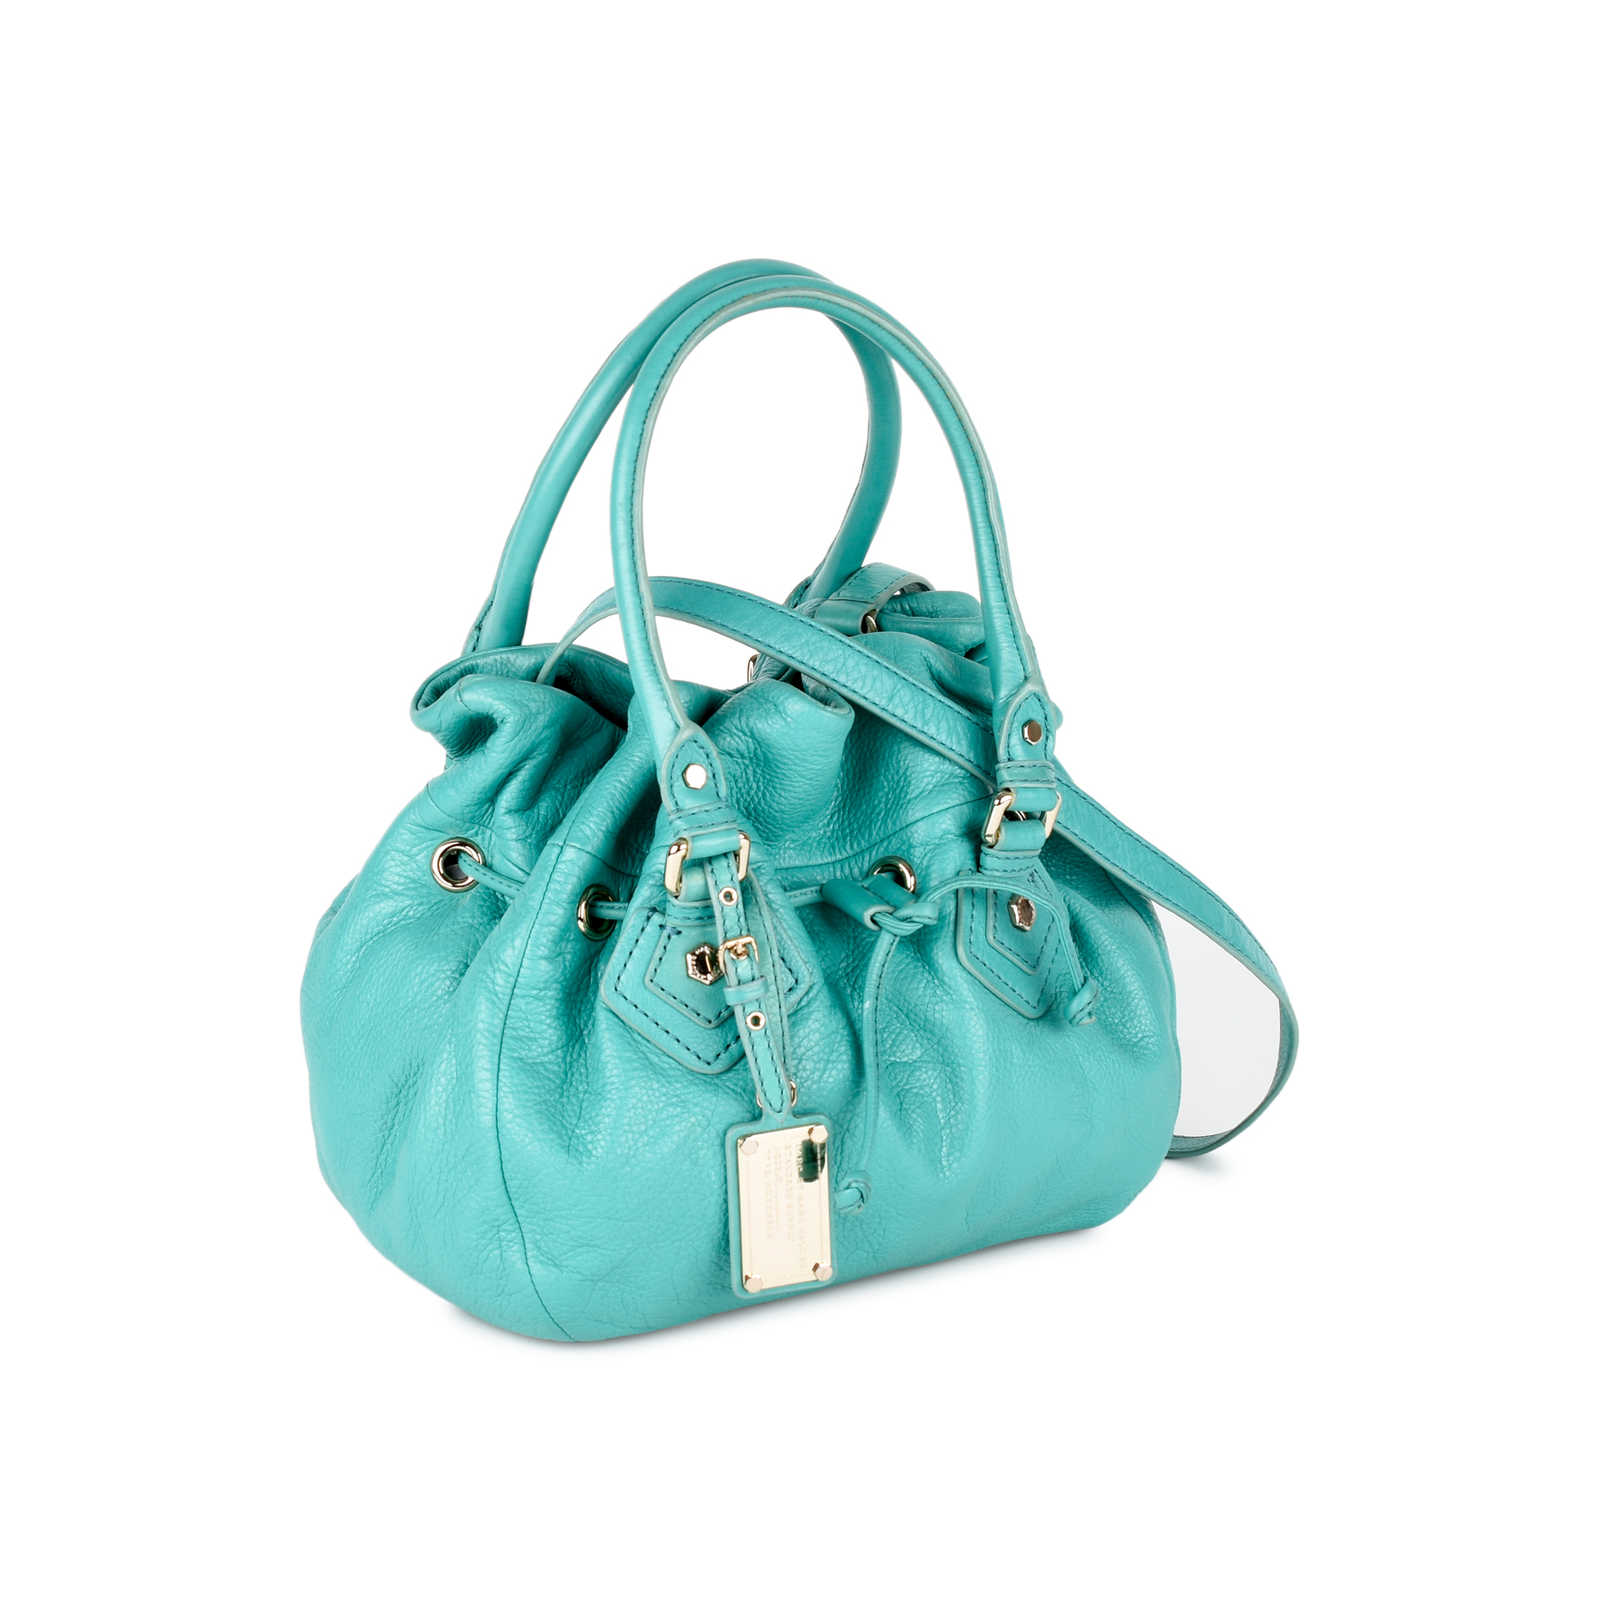 60b1326a7fc7 ... Authentic Second Hand Marc by Marc Jacobs Classic Q Drawstring Bag  (PSS-439- ...